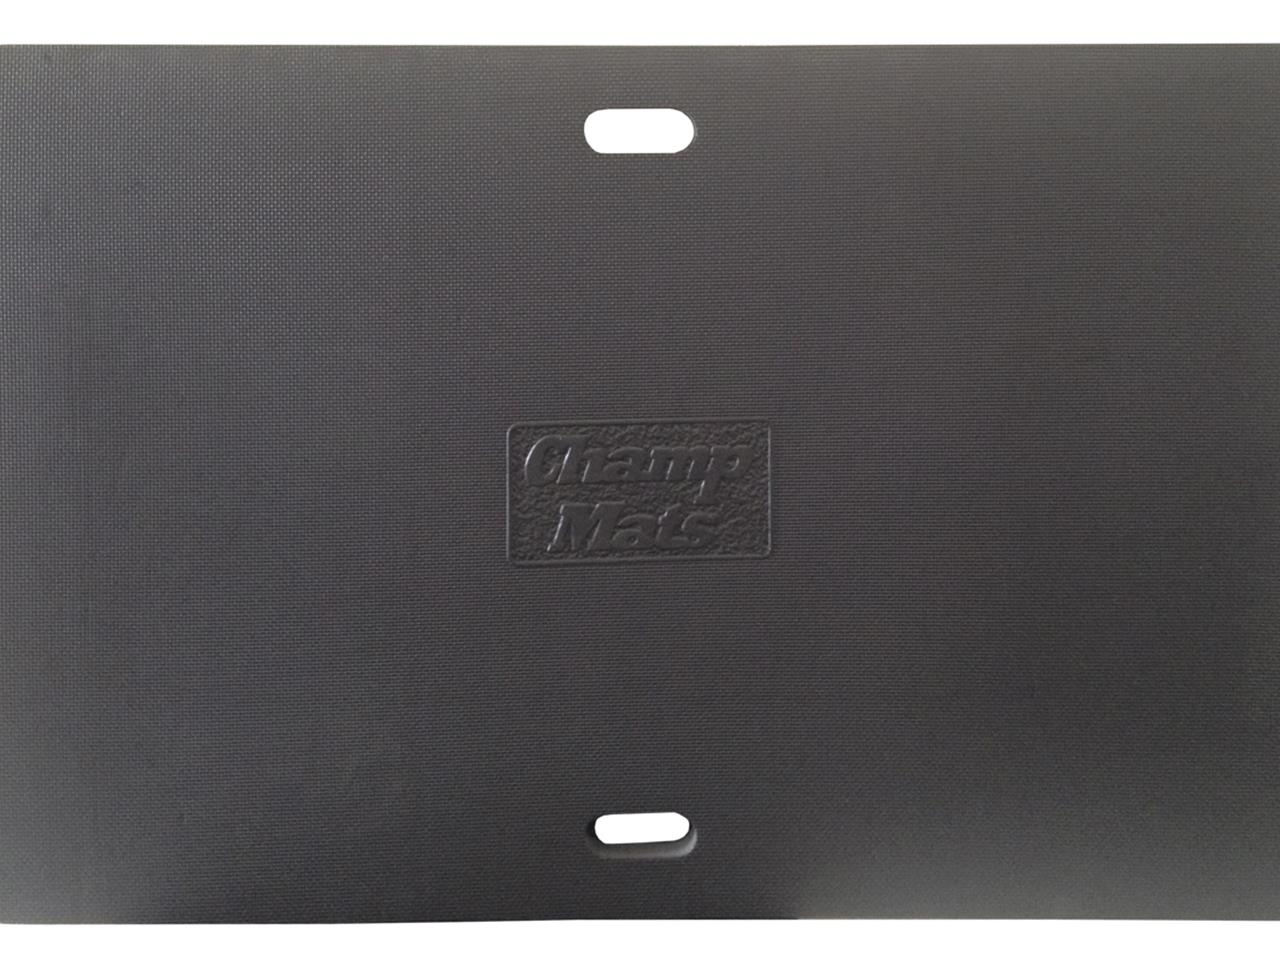 "Champ Pans Mat - 48.5"" X 32"" - Black"